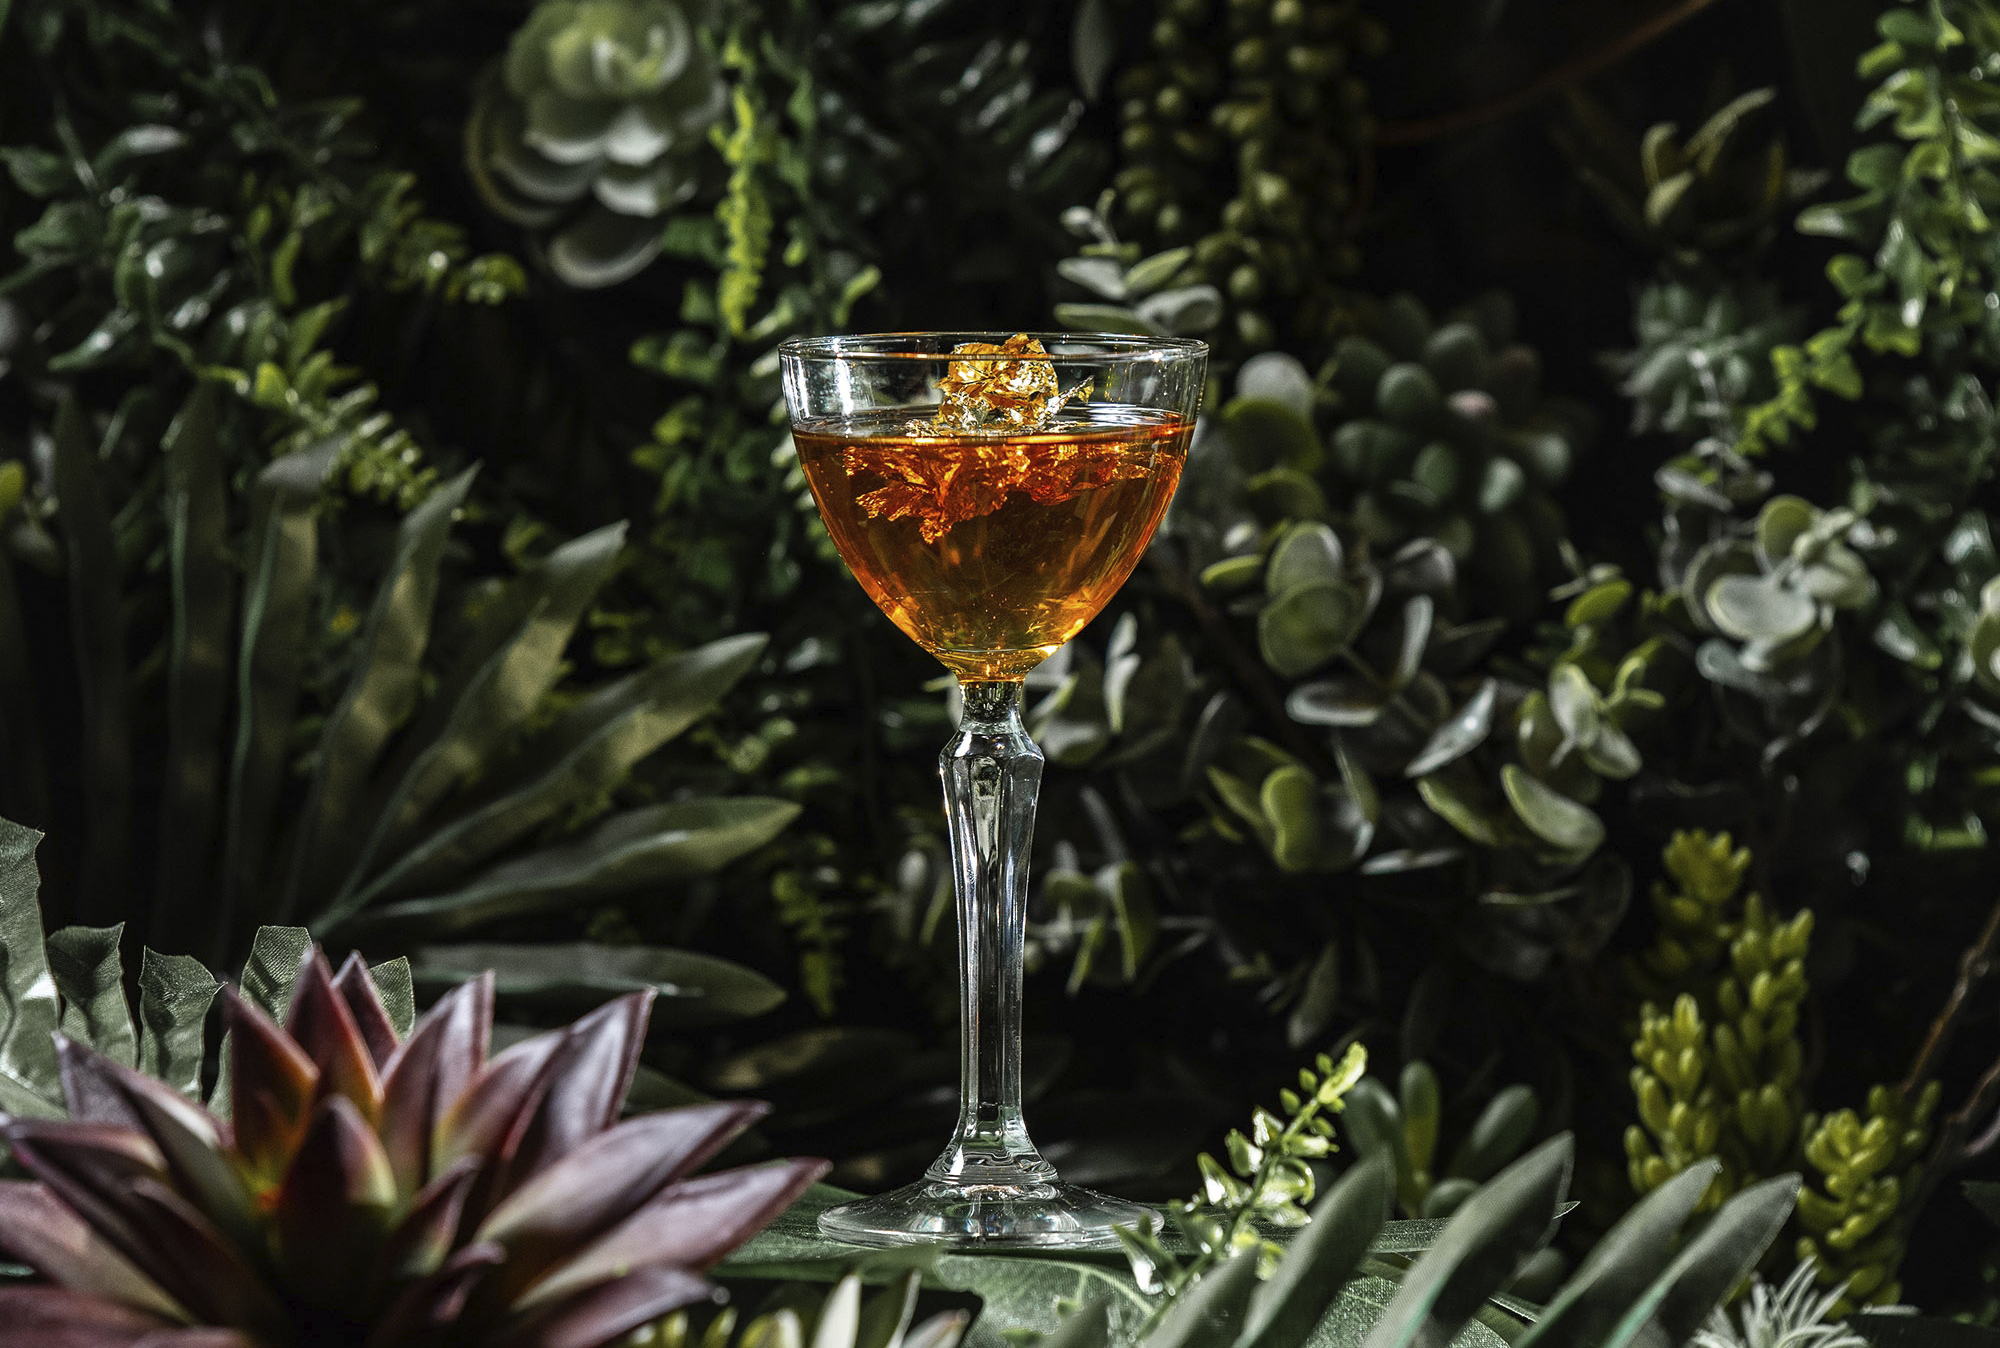 Liquid Gold - £15 Monkey Shoulder Whisky, Jägermeister Manifest, Martini Ambrato, Tio Pepe Sherry, Coffee Drops and Lemon Bitters garnished with Gold Leaf Flakes